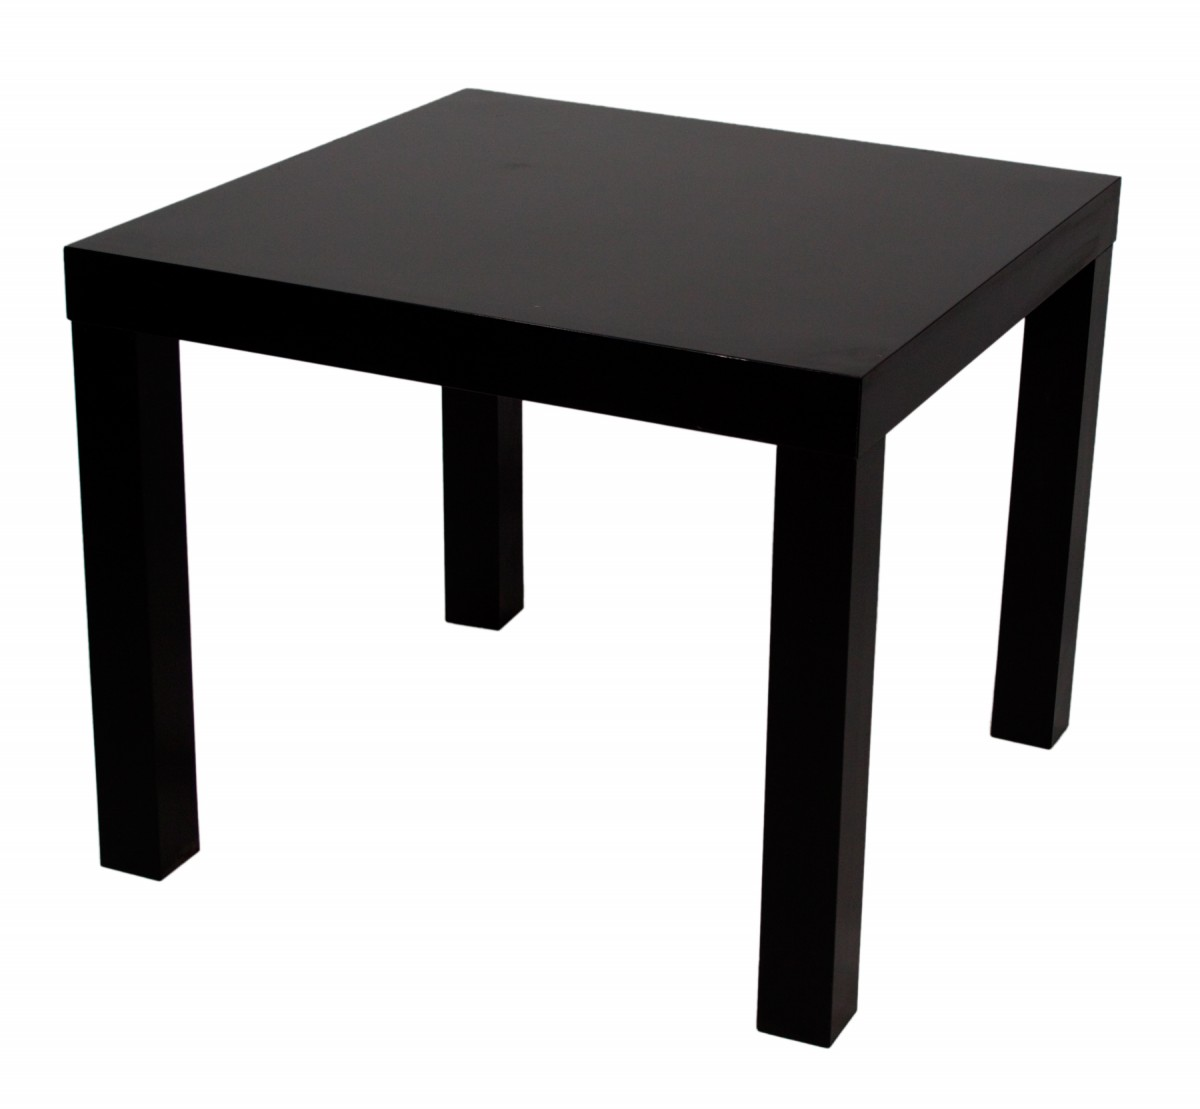 Table design small coffee table red edition red edition - Petite table basse noire ...